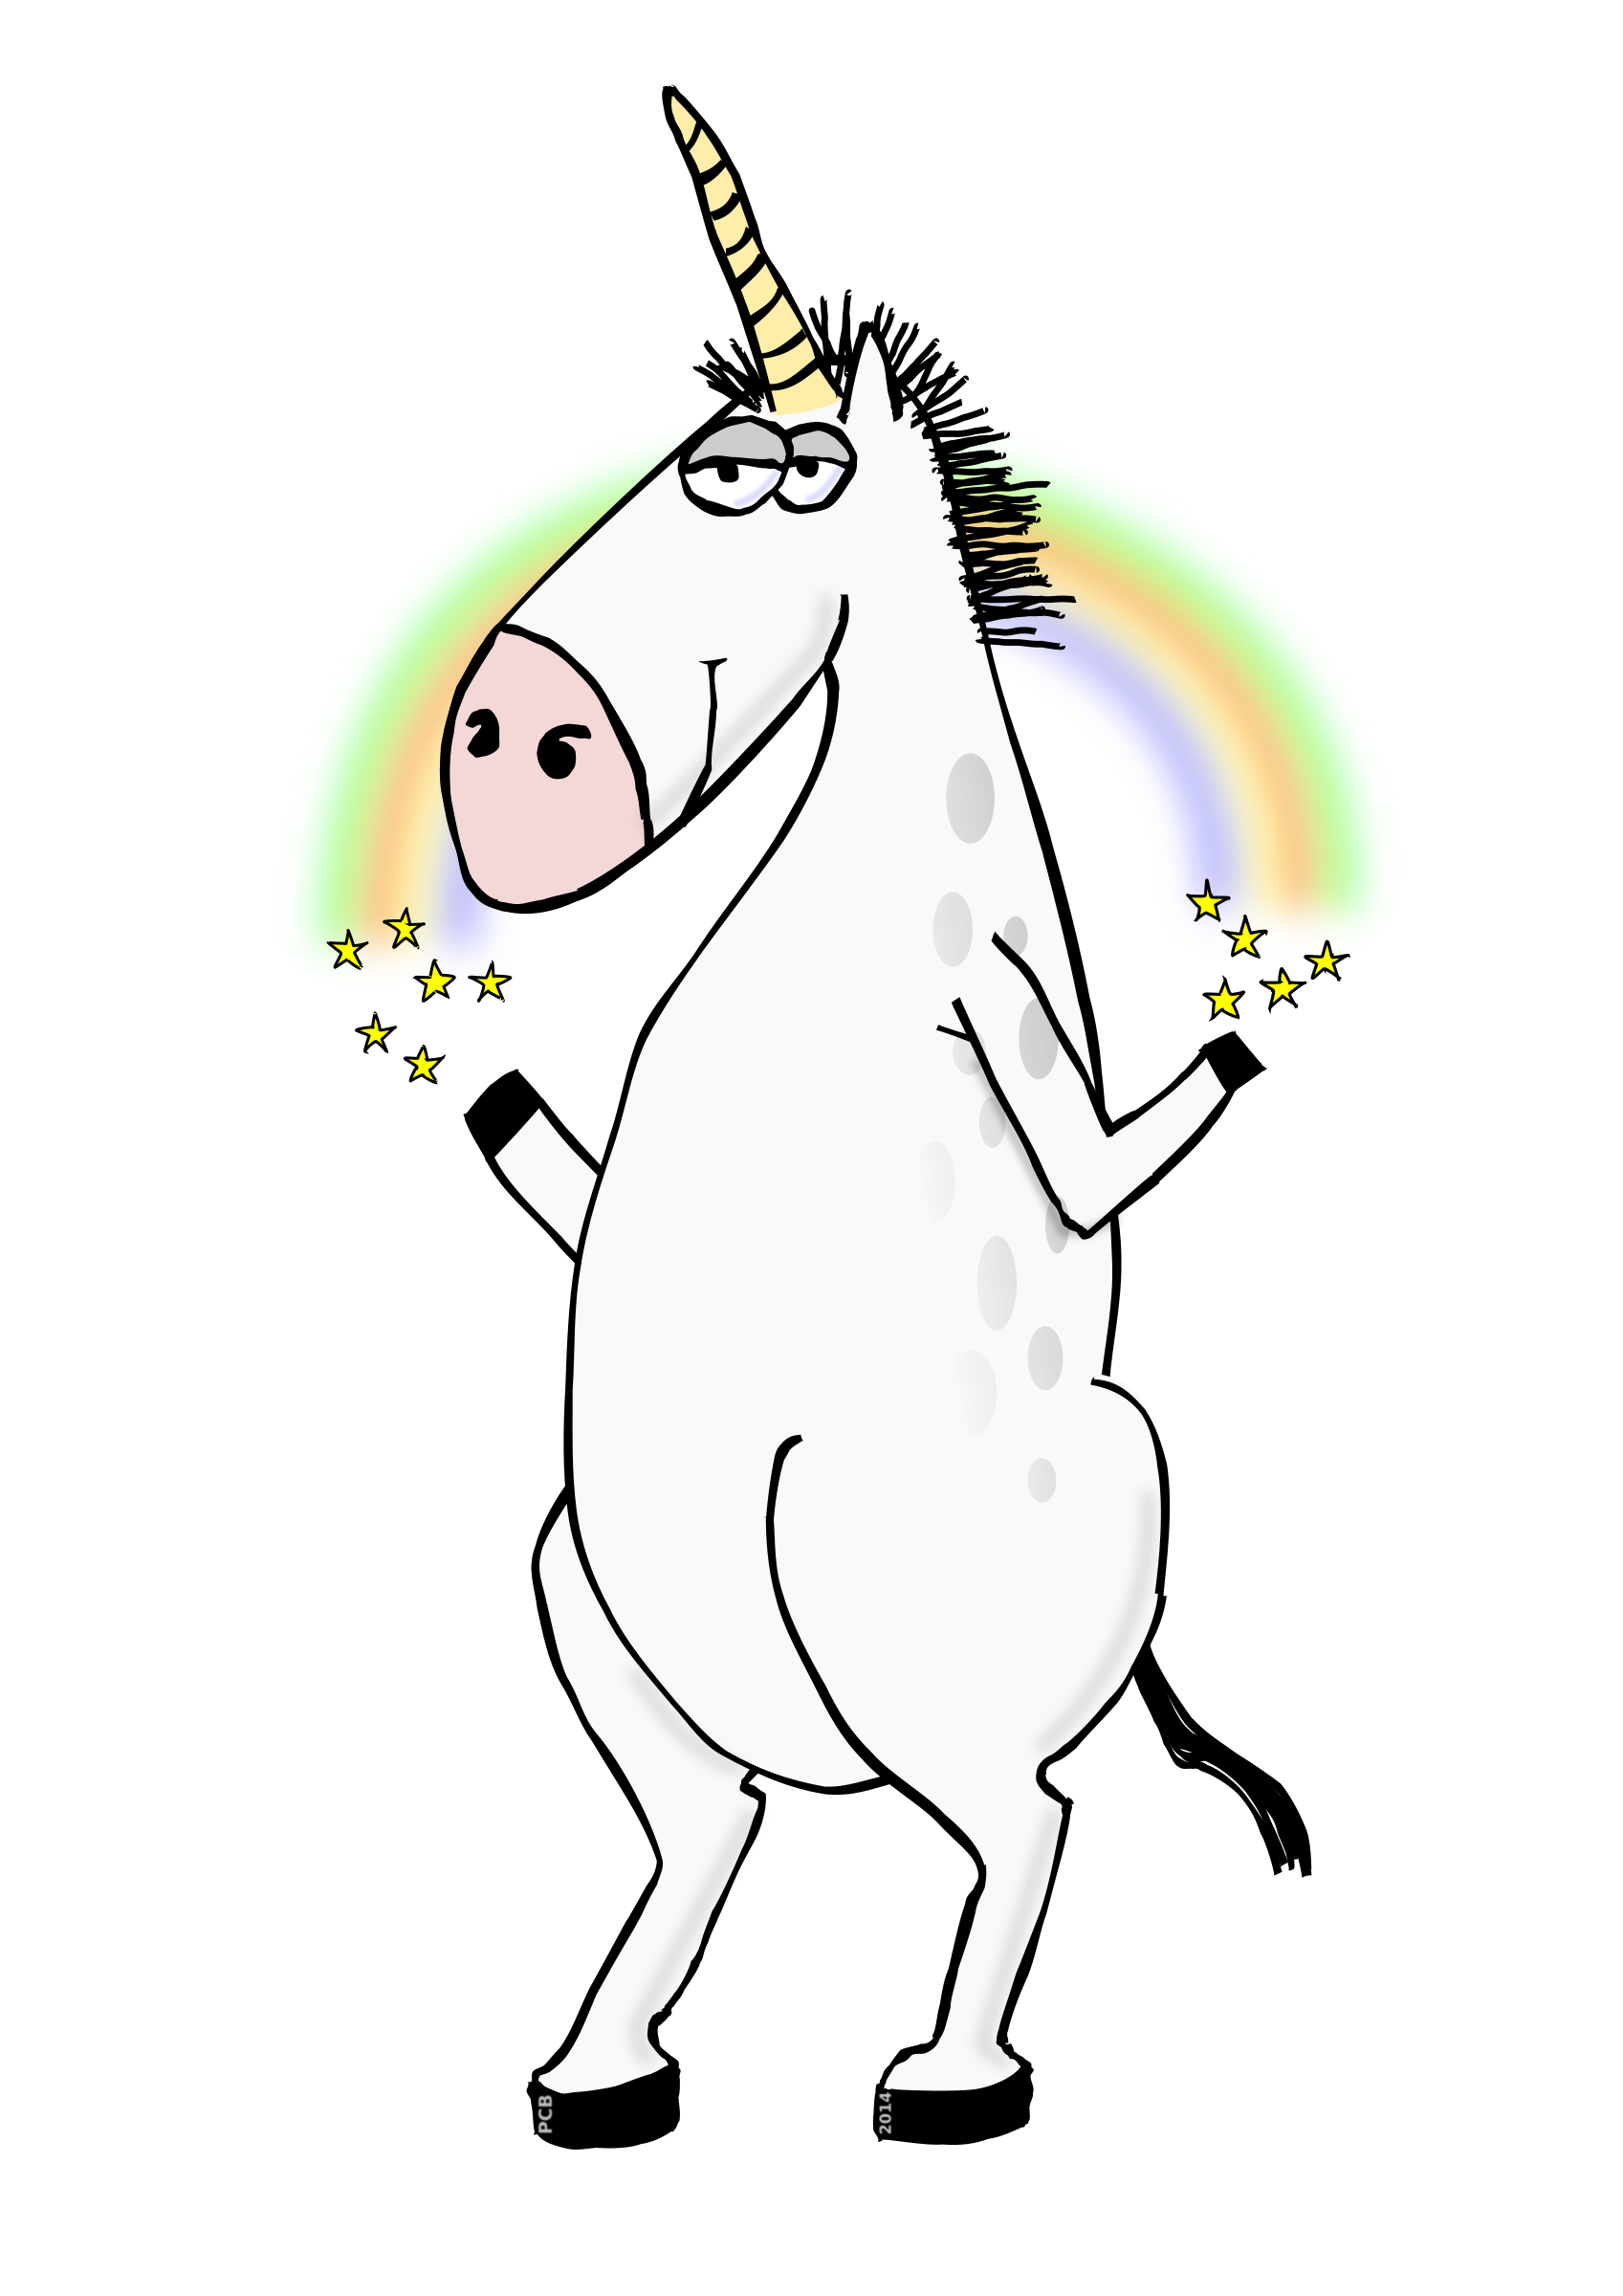 Utopic Unicorn by Bro666